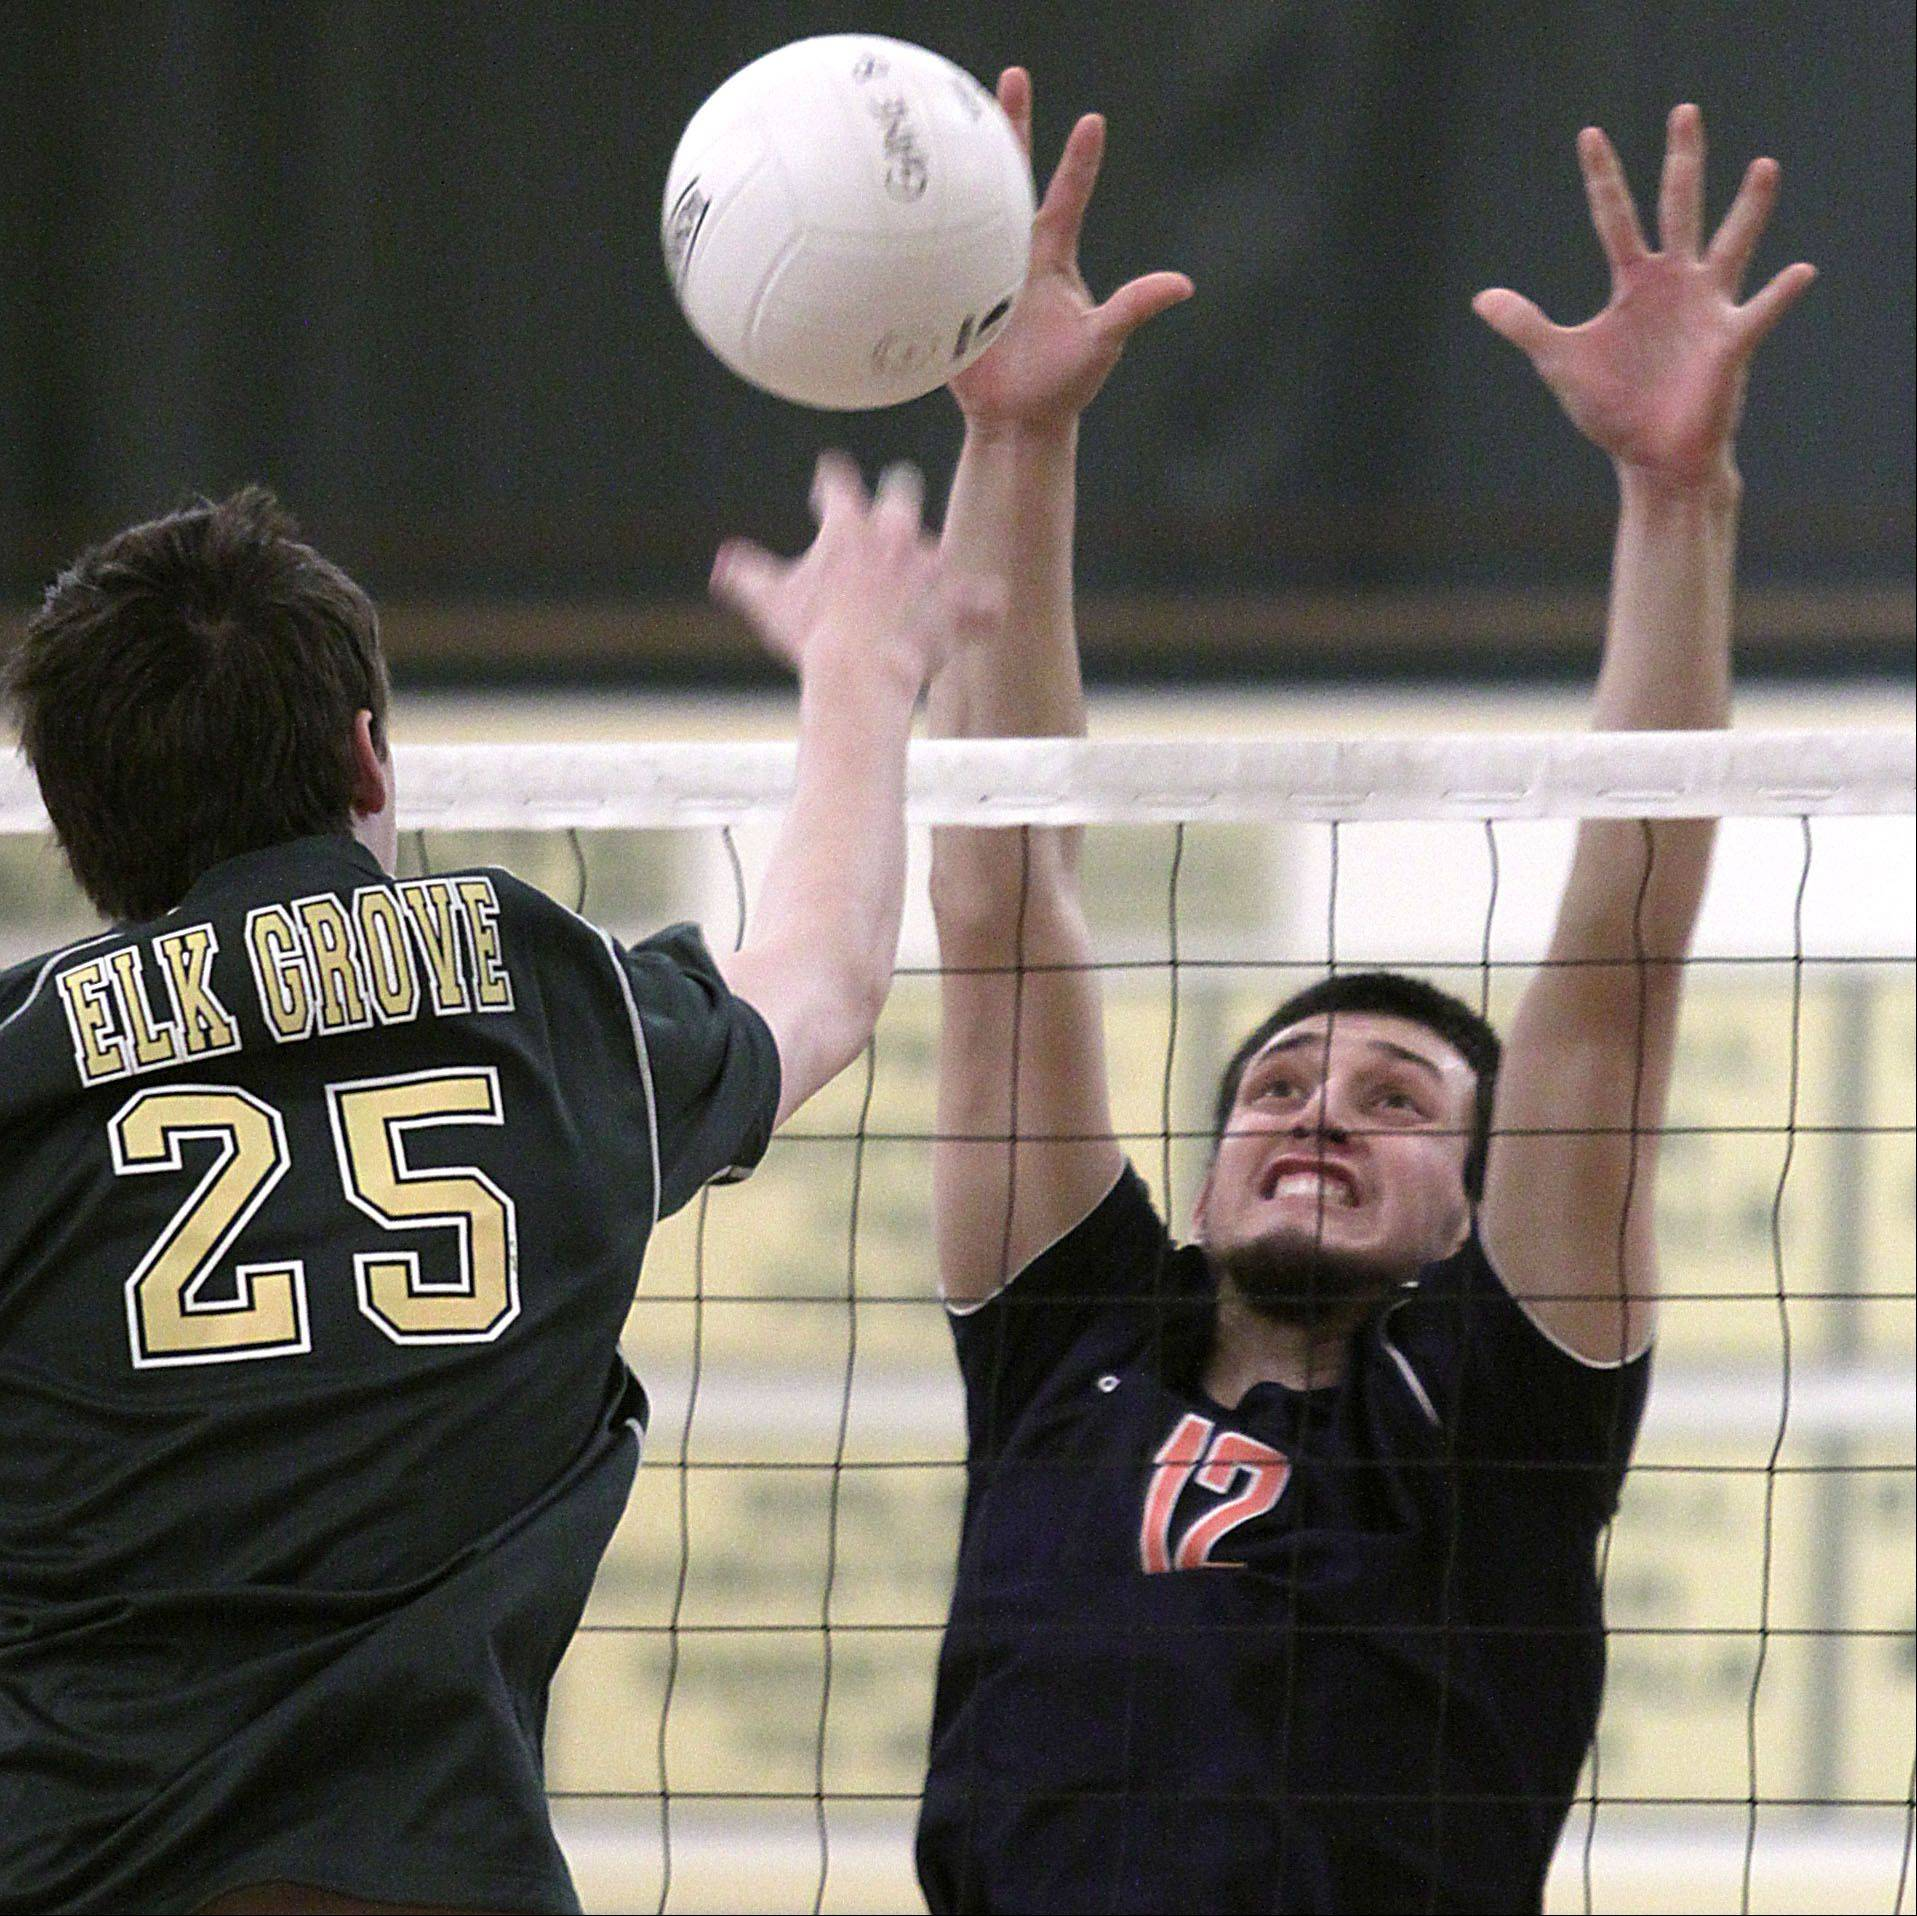 Elk Grove's Sam Jasutis, left, hits the ball against Buffalo Grove's Jose Aguirre on Tuesday at Elk Grove.